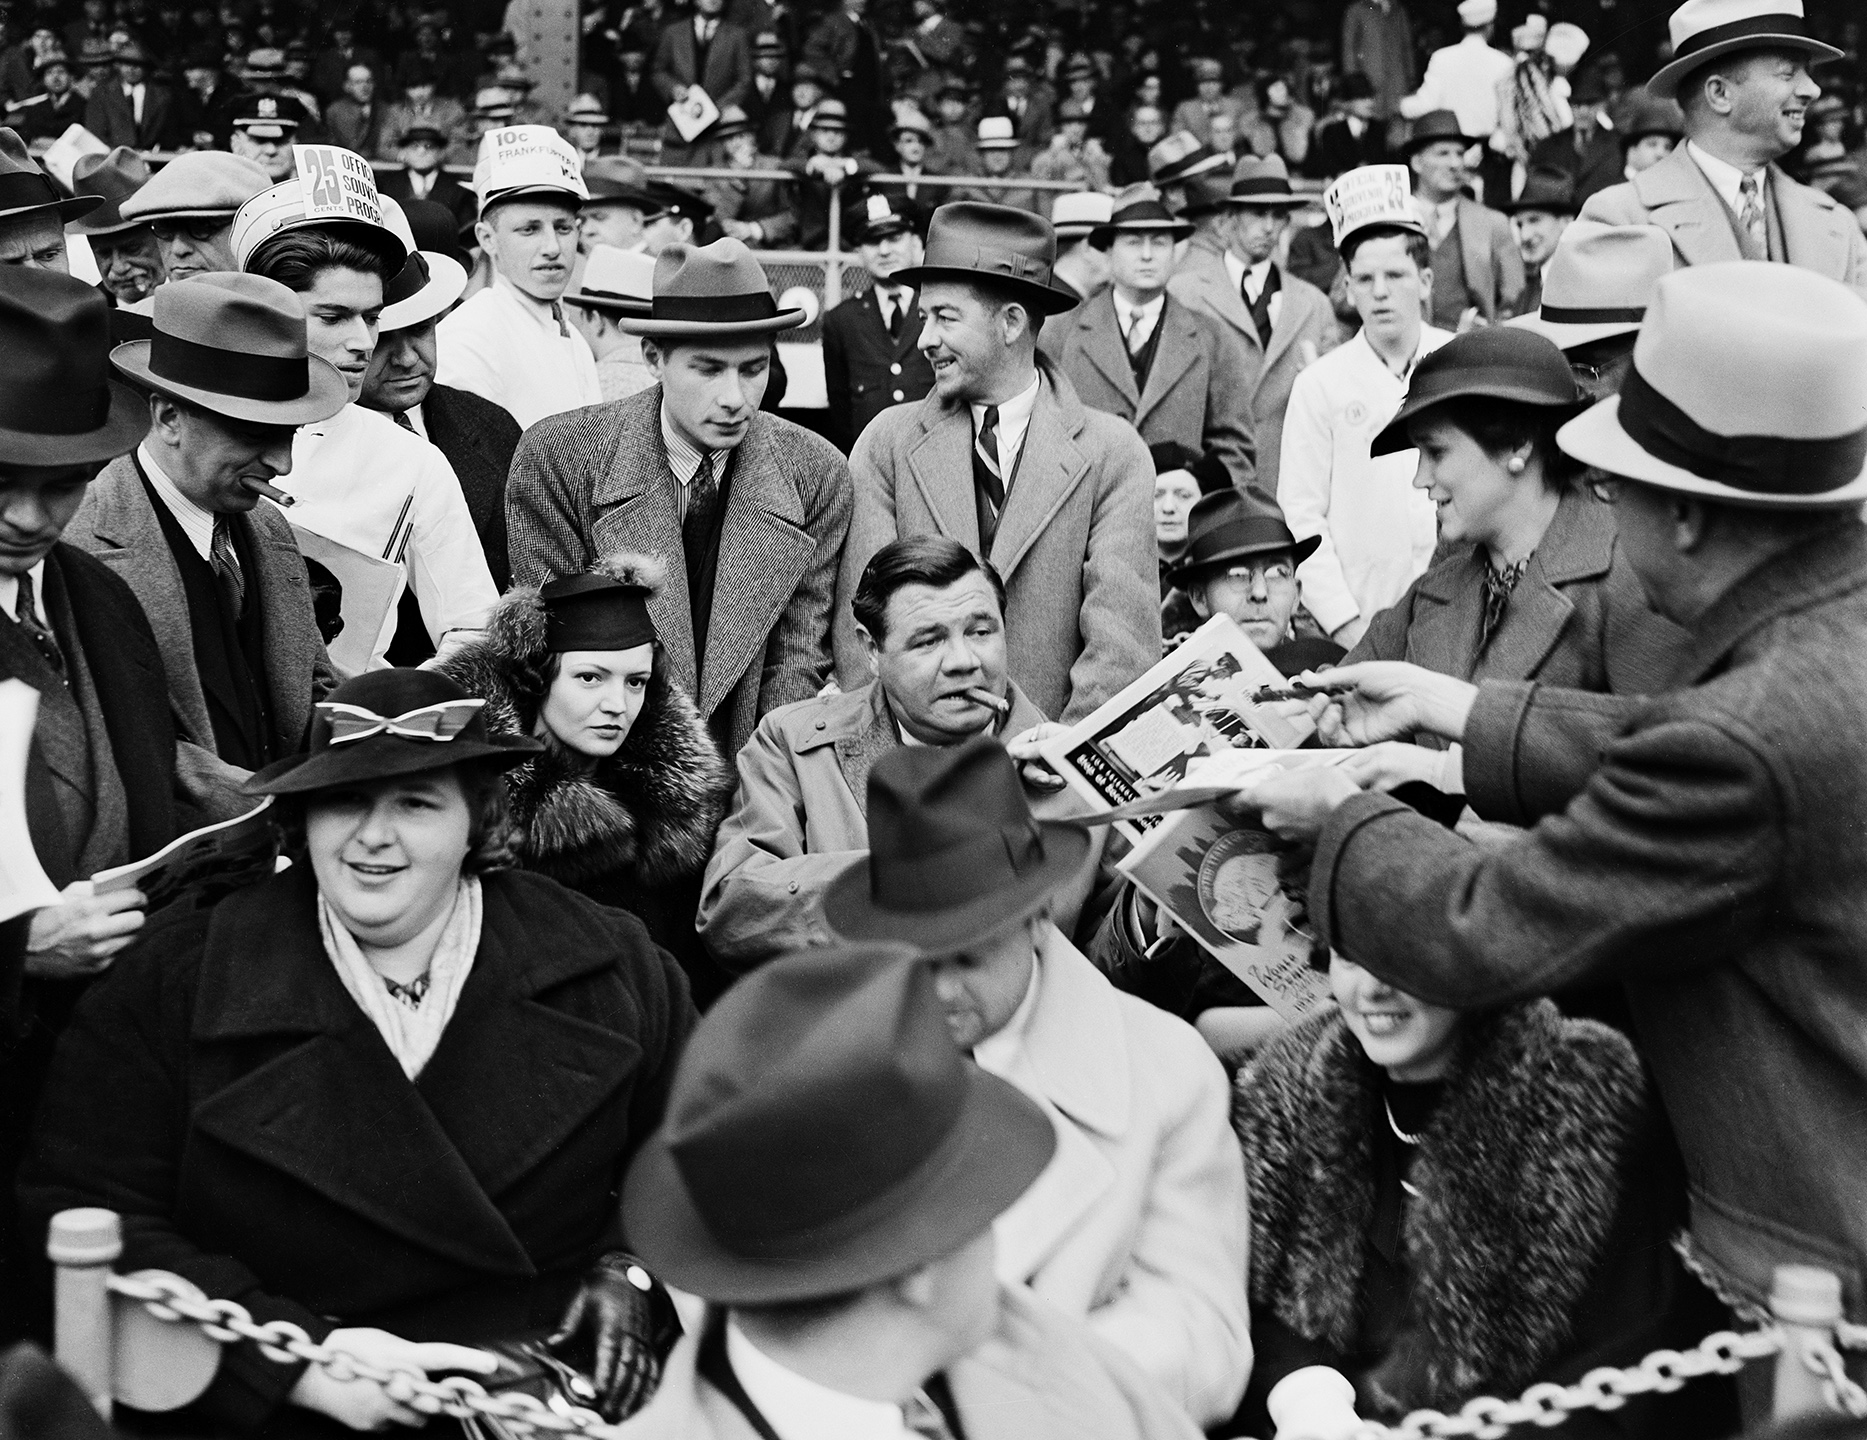 1936 World Series, singer Kate Smith (front left) and Babe Ruth (center) with his wife Claire Merritt Ruth in special seats in front of grandstand, September 1936. WPA Federal Writers' Project, NYC Municipal Archives.